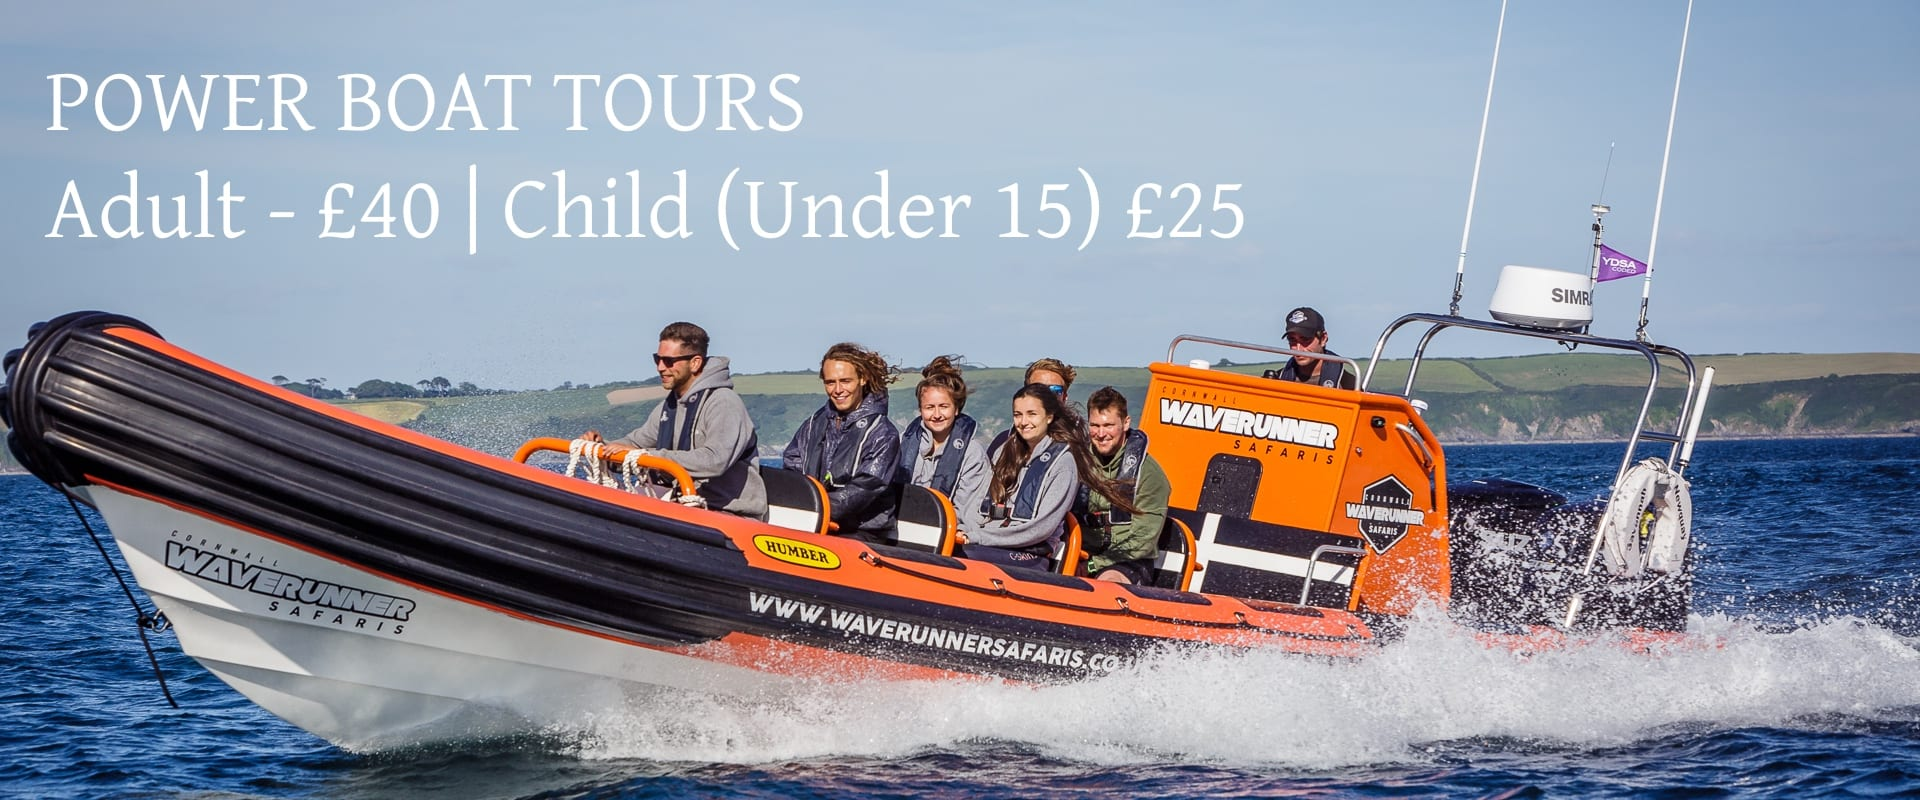 Power Boat Tours Newquay